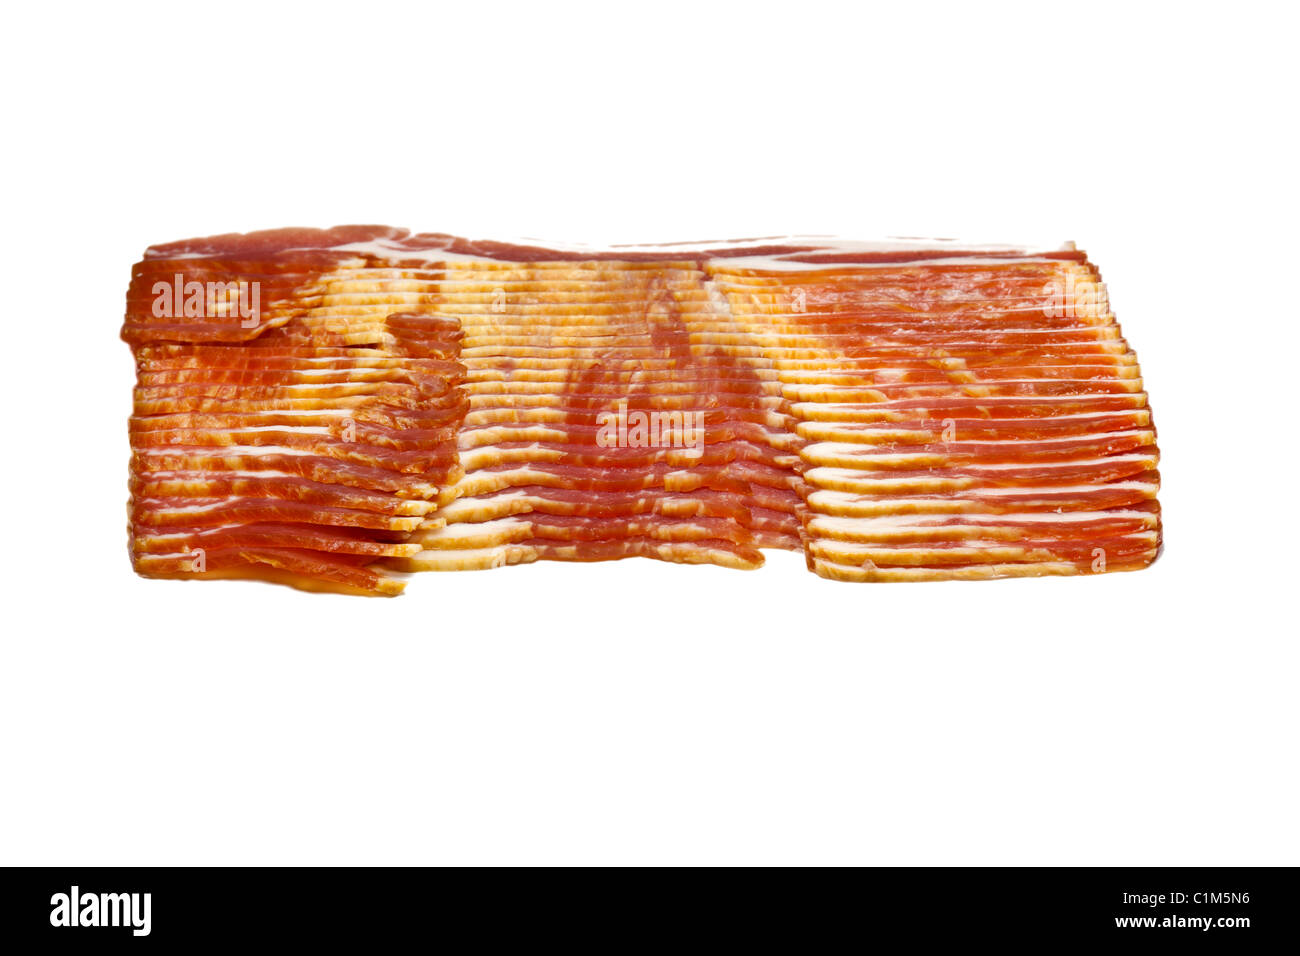 Uncooked stack of bacon isolated on white. Charles Lupica - Stock Image